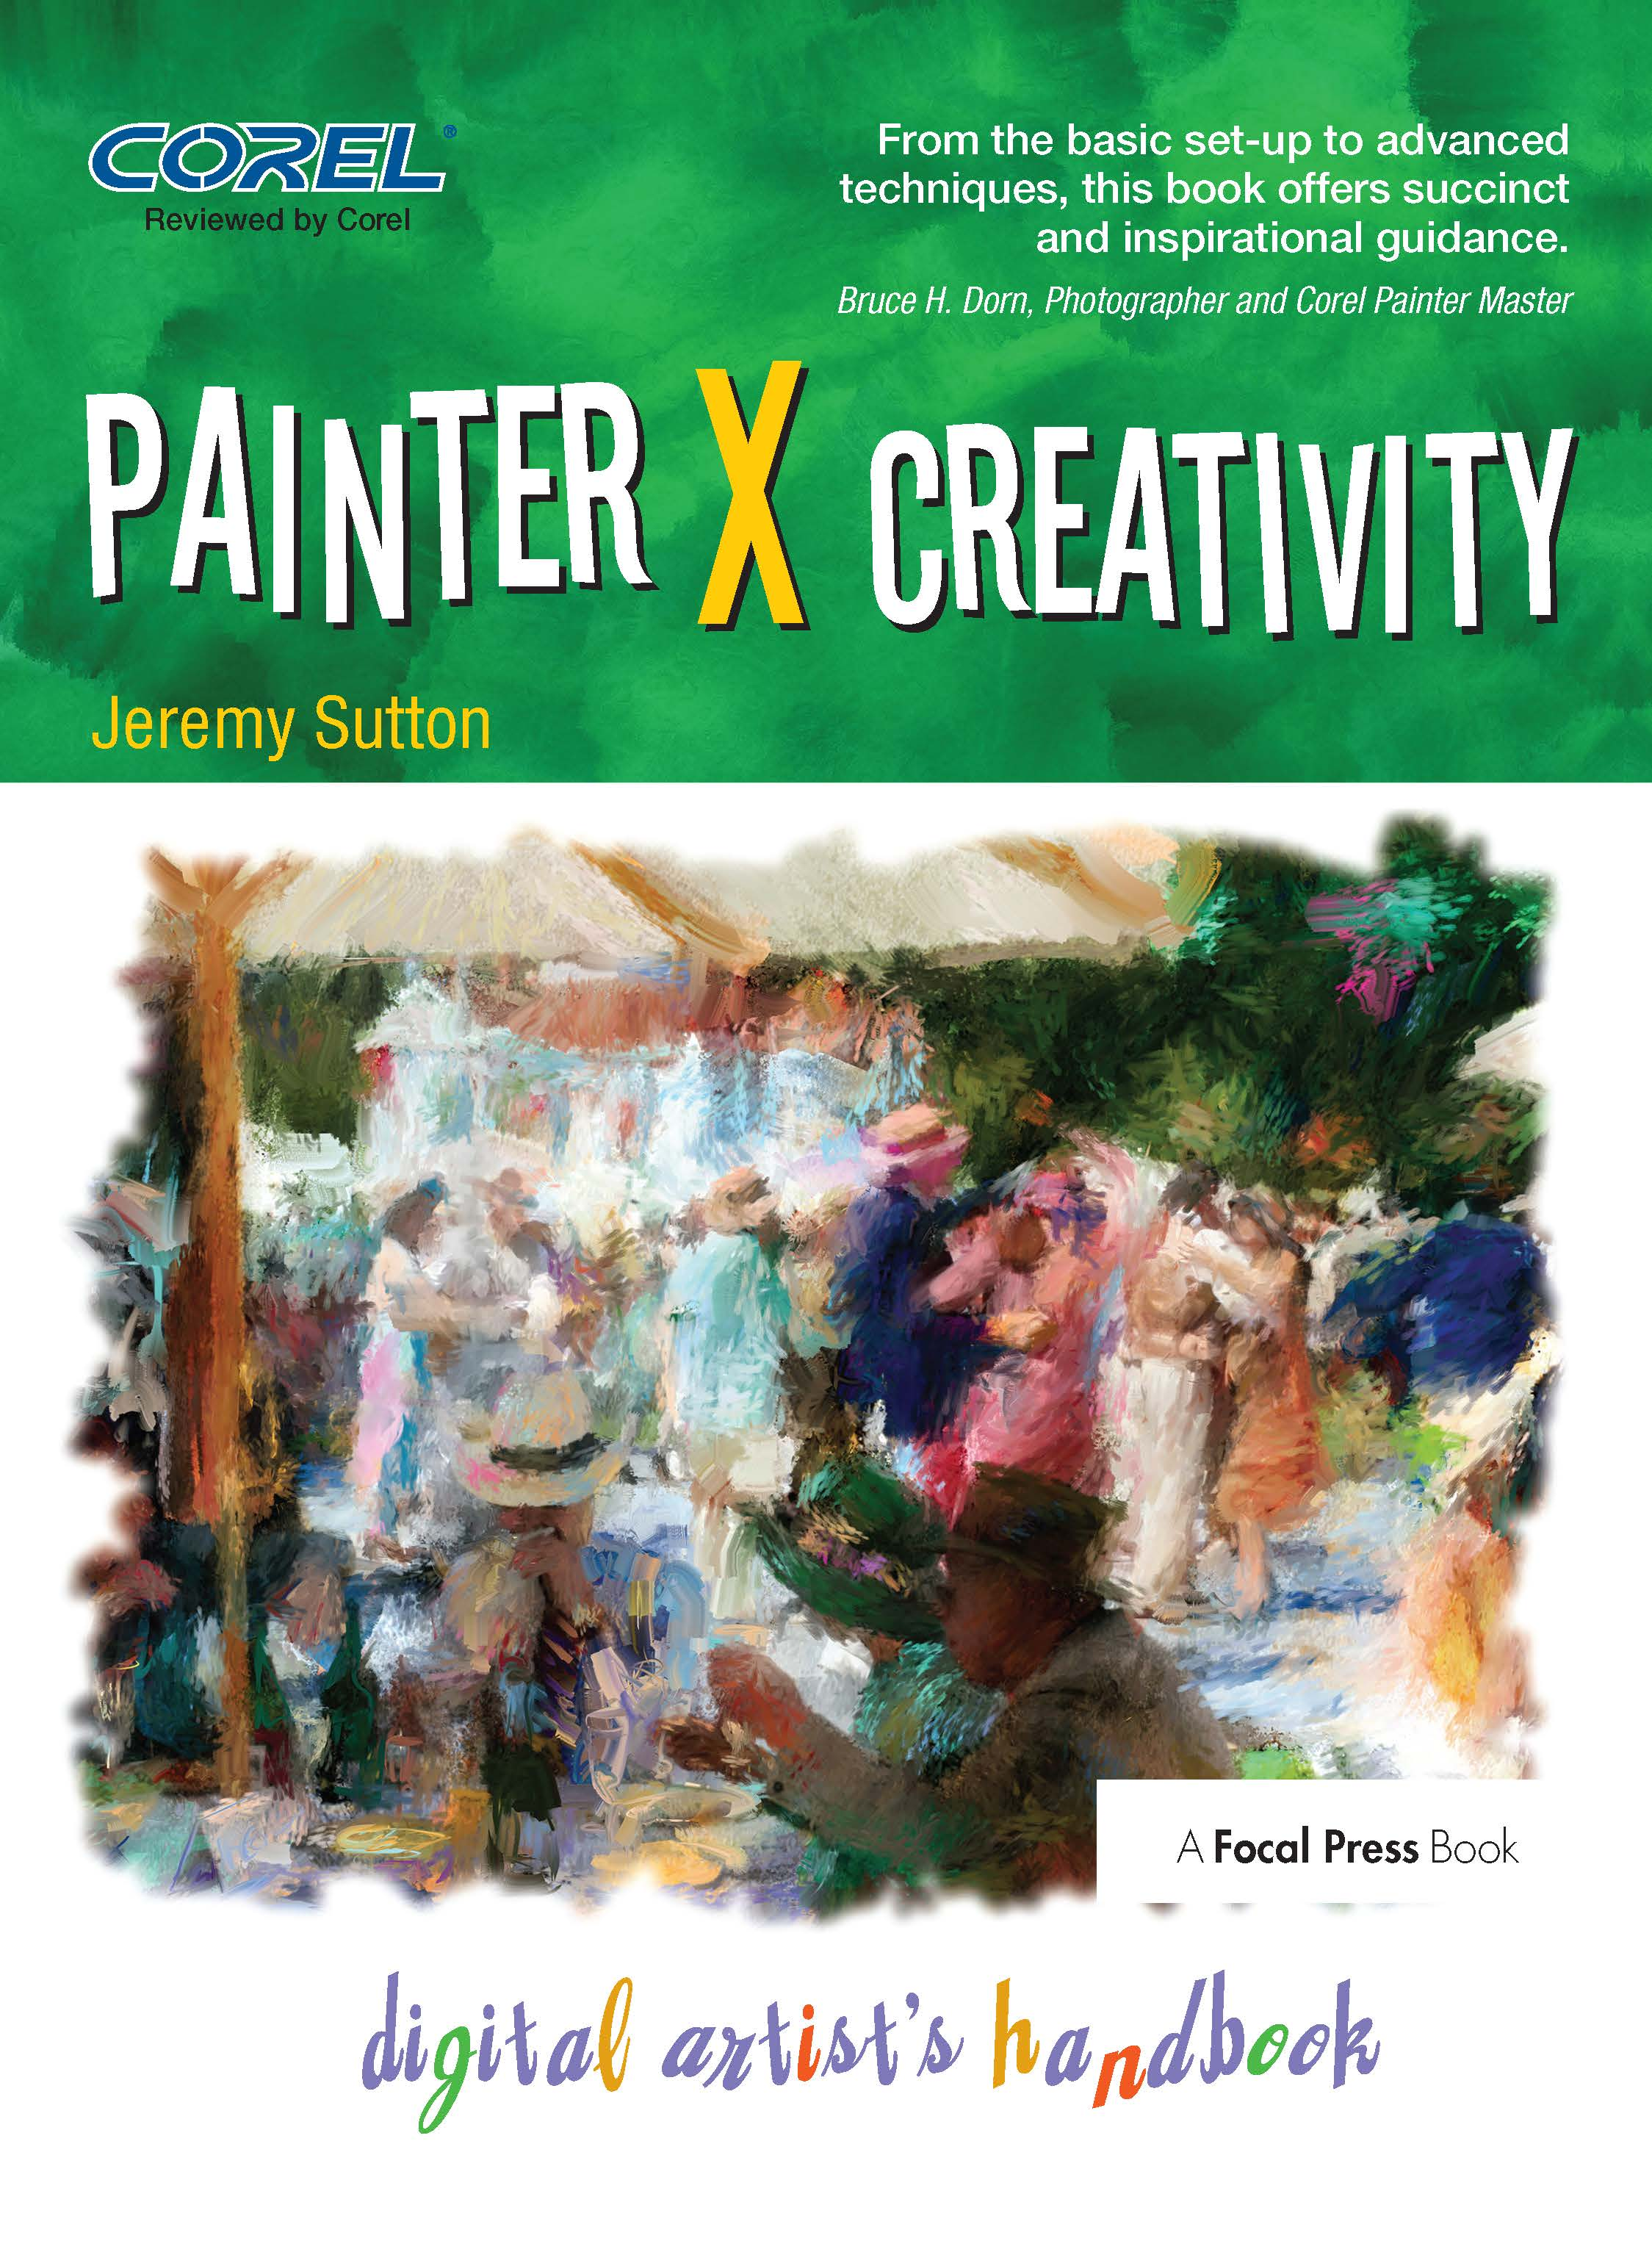 Painter X Creativity: Digital Artist's handbook book cover